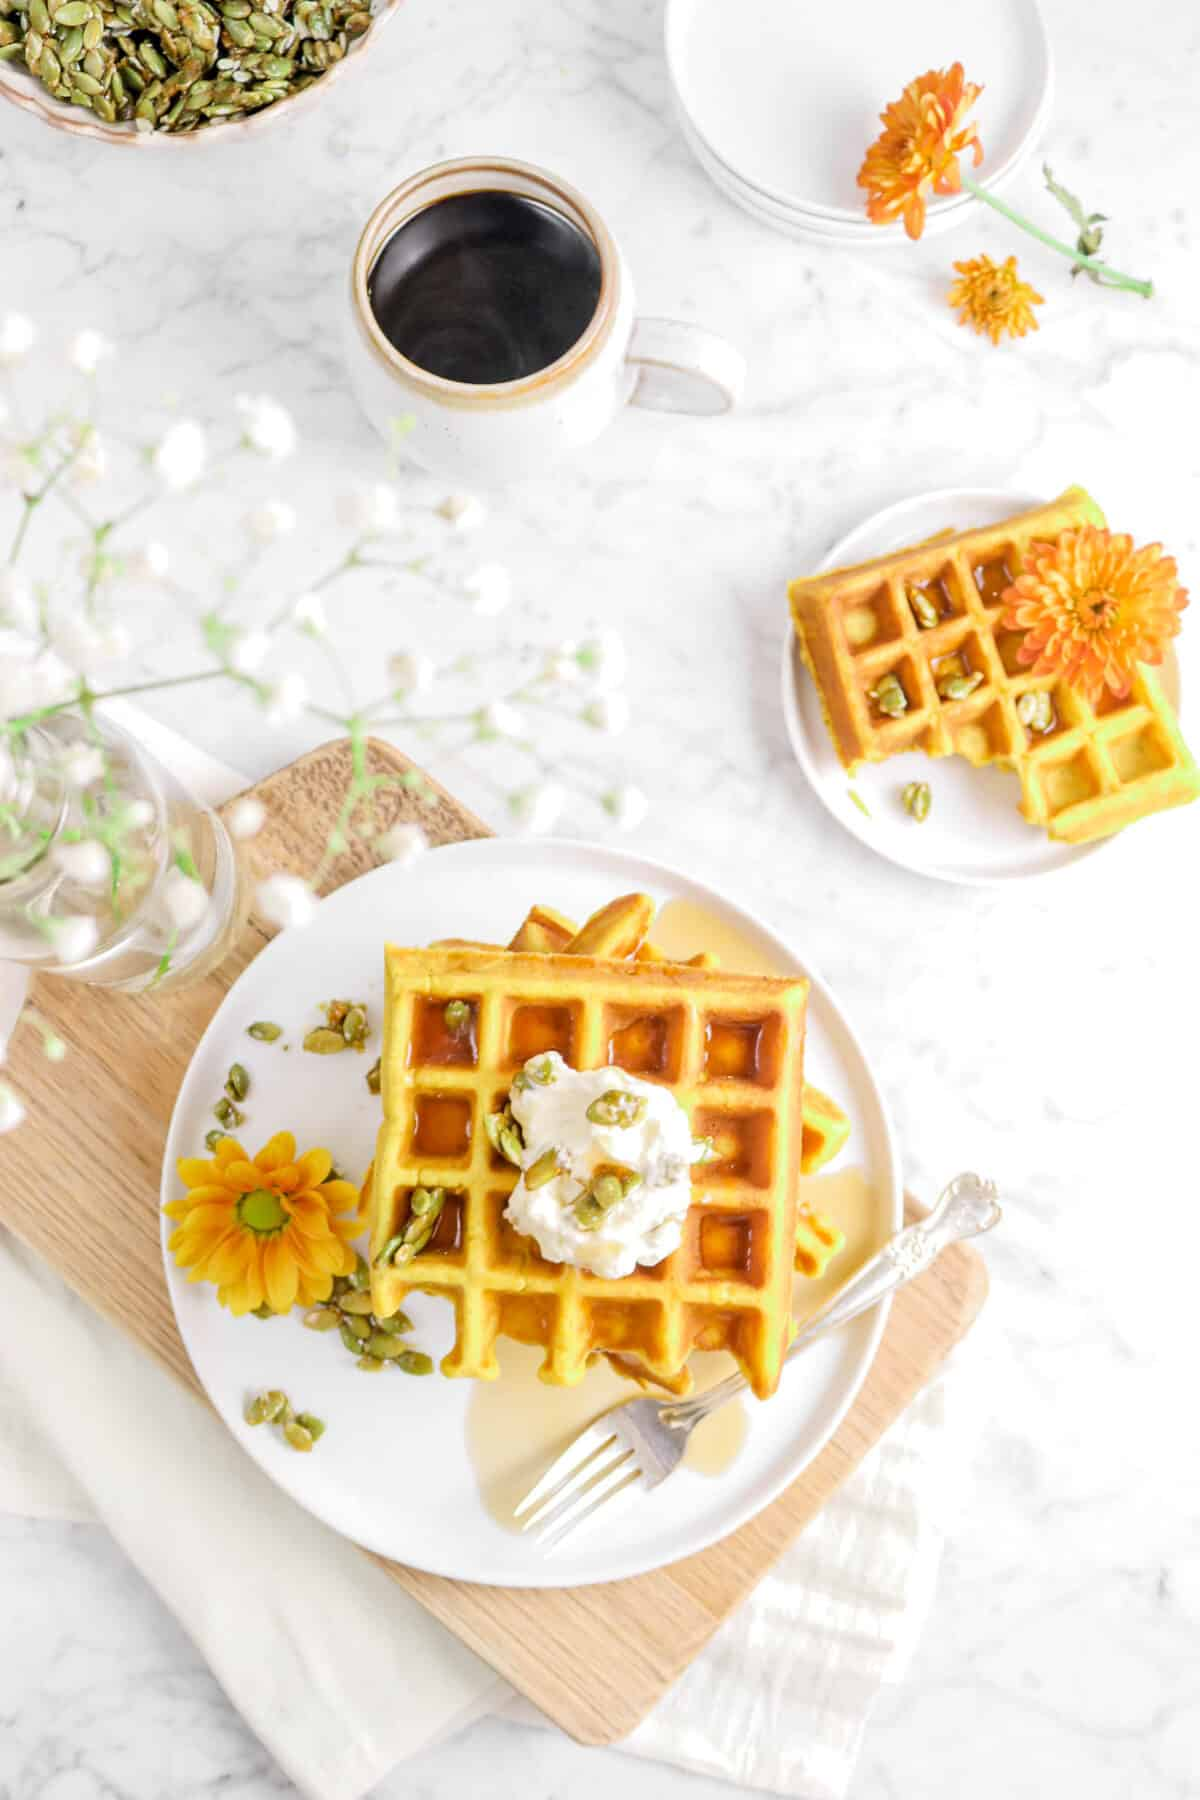 waffles on a white plate with flowers, on a wood serving board, waffle on small white plate, and cup of coffee